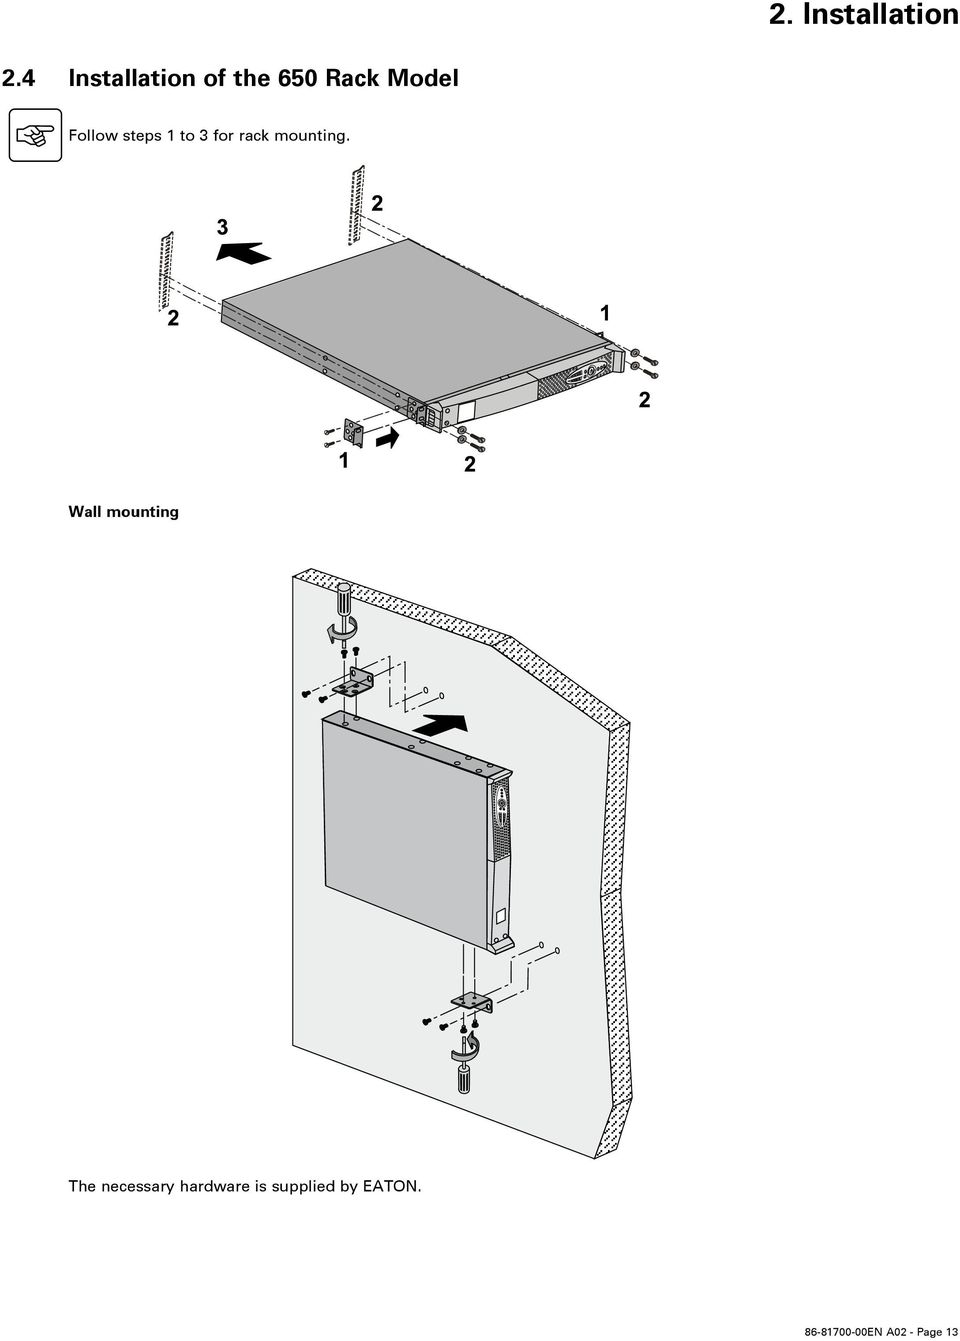 steps 1 to 3 for rack mounting.